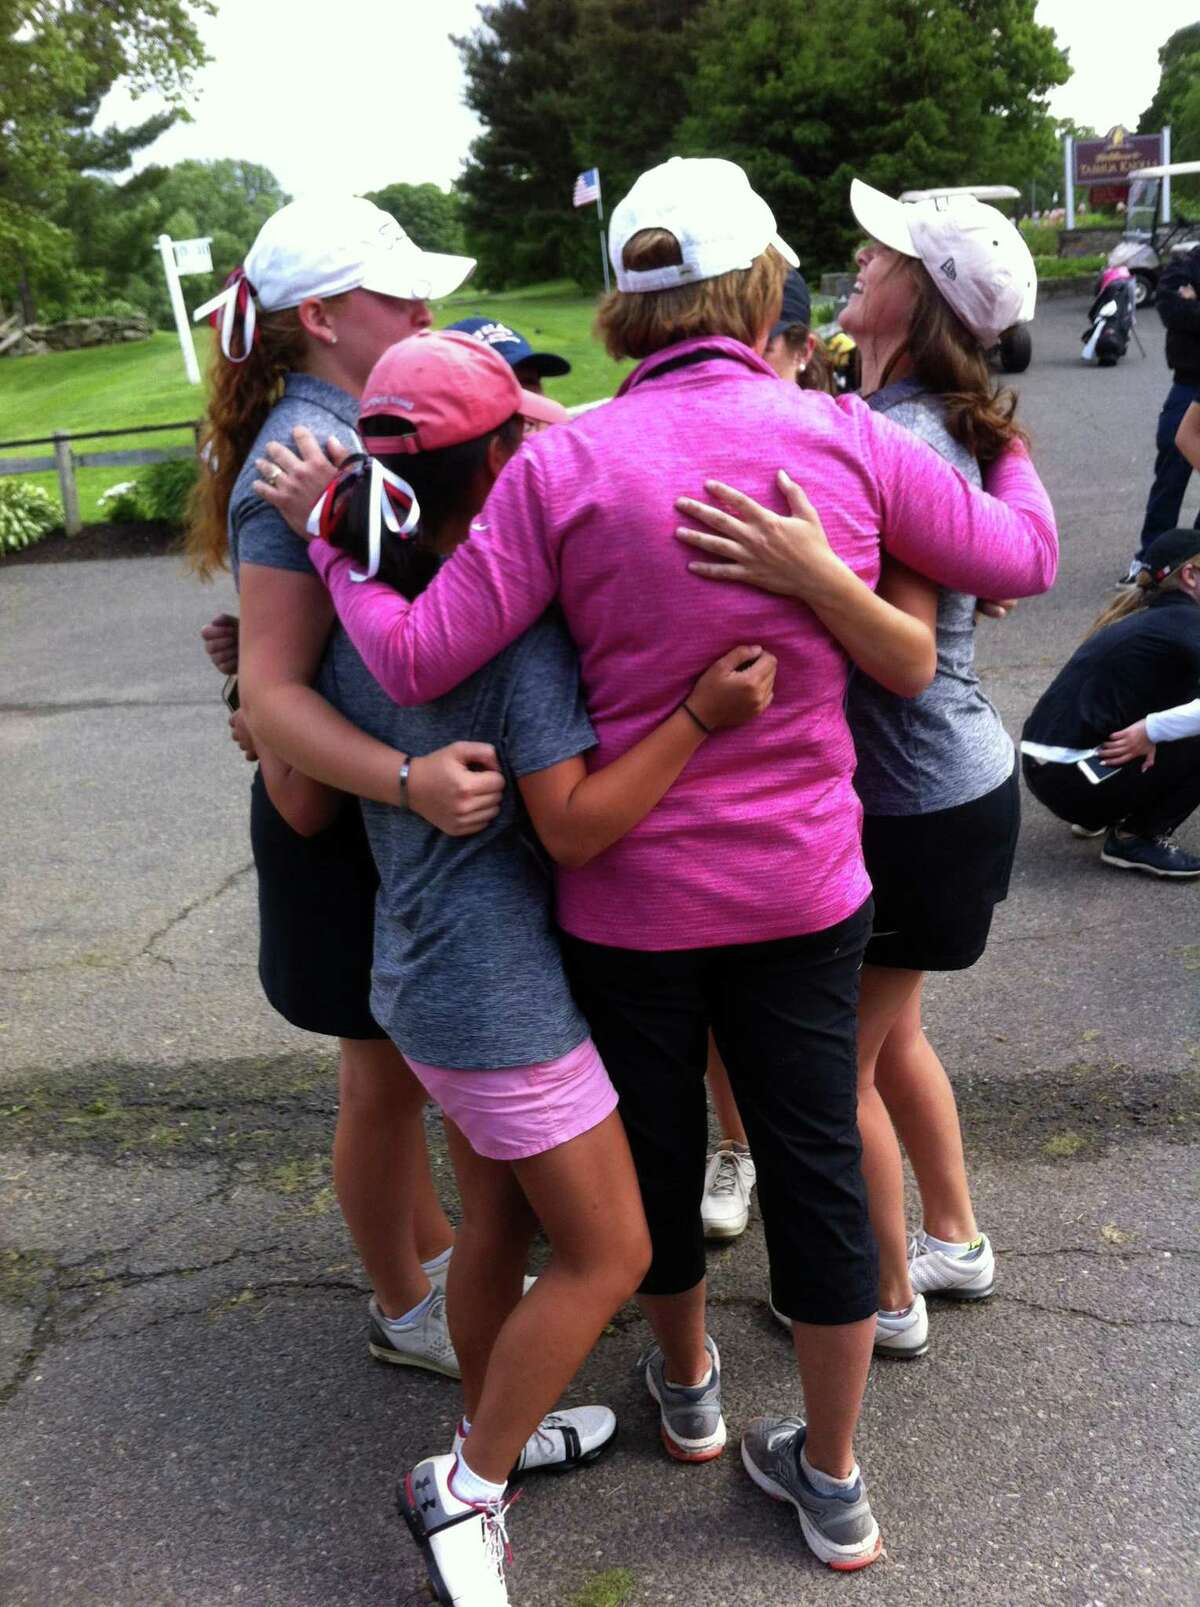 New Canaan celebrates after winning the CIAC girls golf championship on Tuesday, June 5, 2018 at Tashua Knolls Golf Club in Trumbull, Conn.